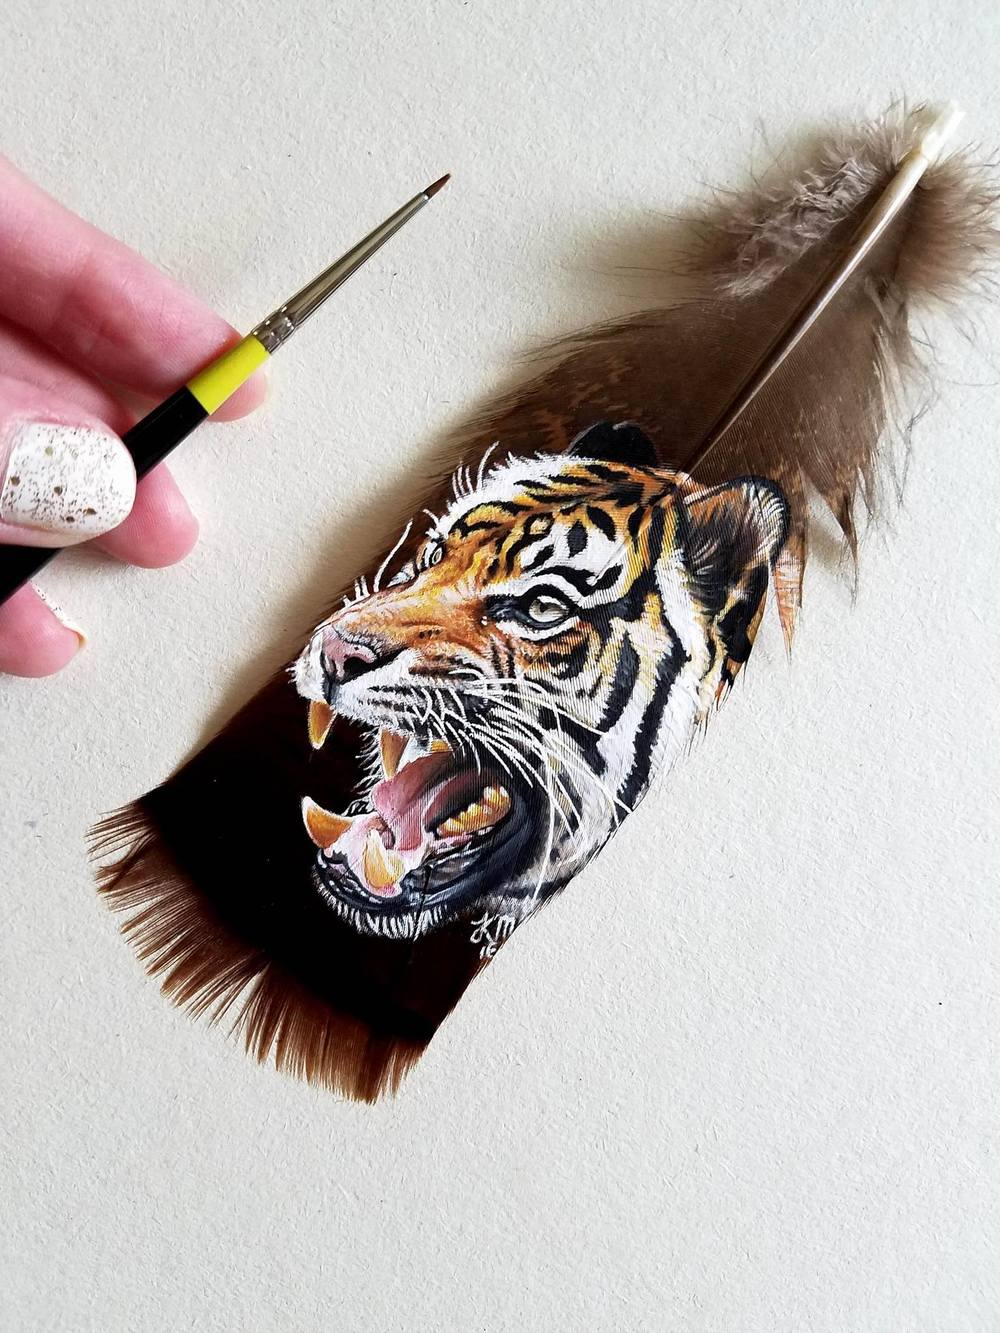 Artist Paints Detailed Realistic Animal Portraits on Feathers (7 pics)